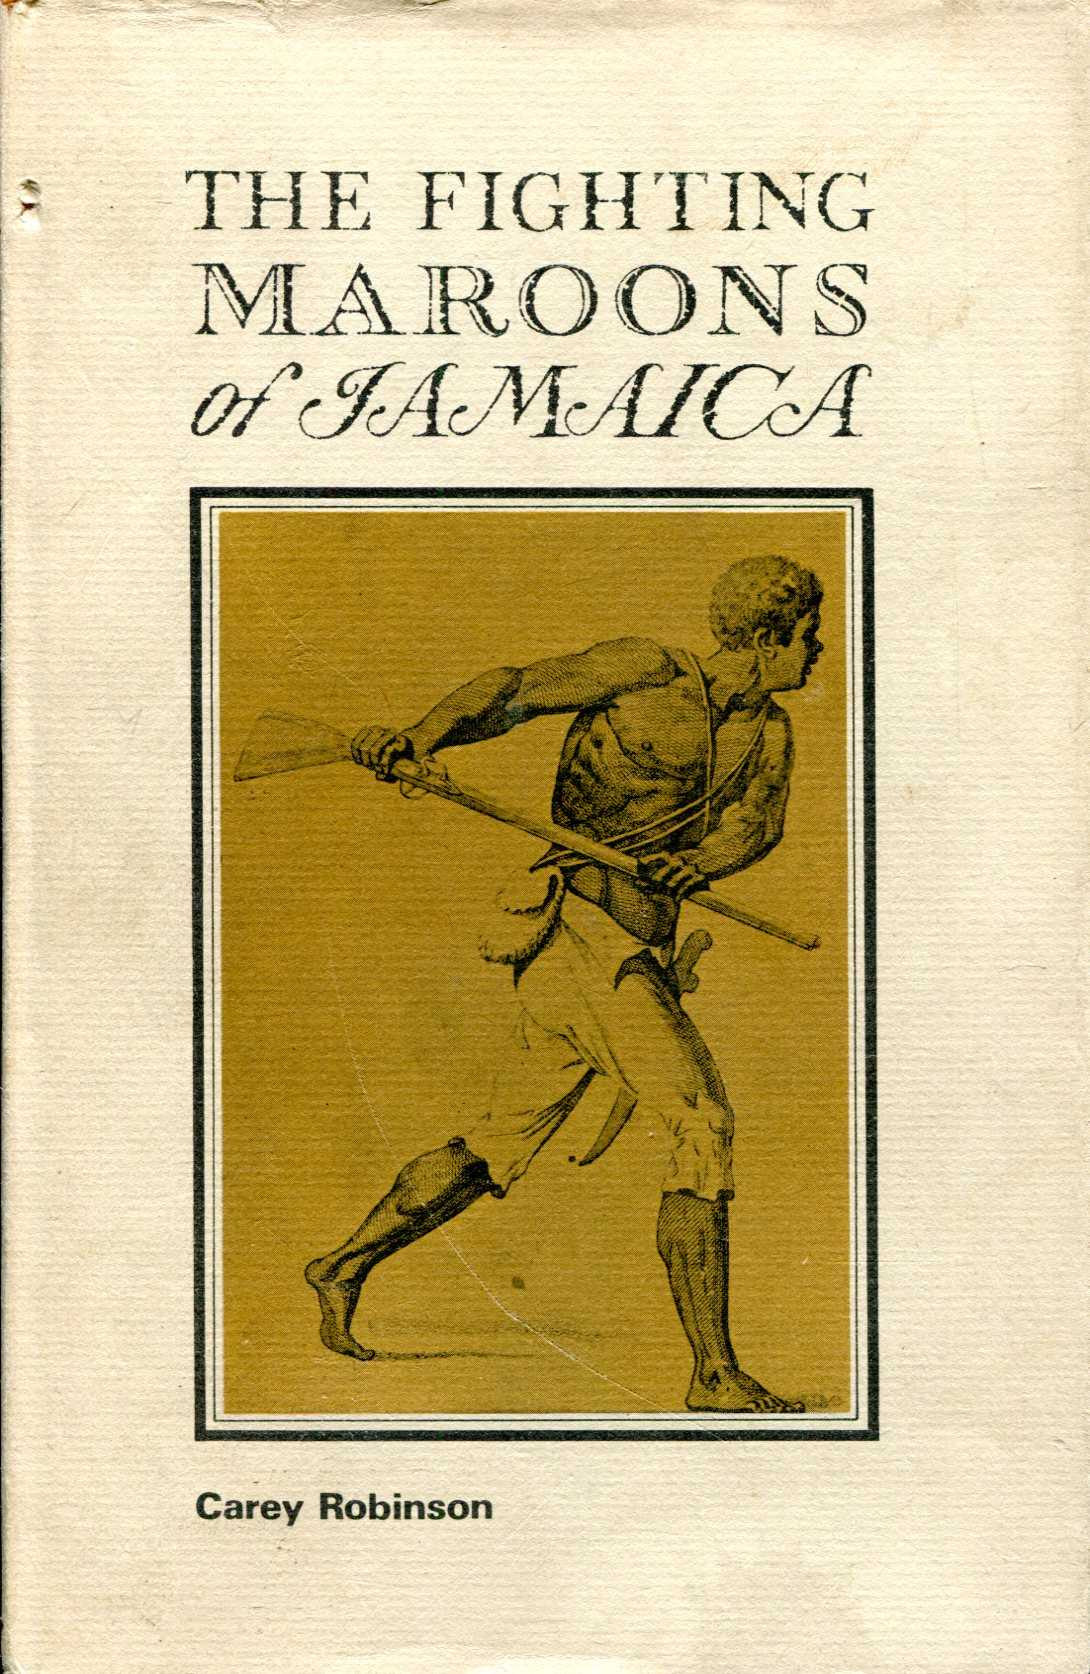 Image for The Fighting Maroons of Jamiaca